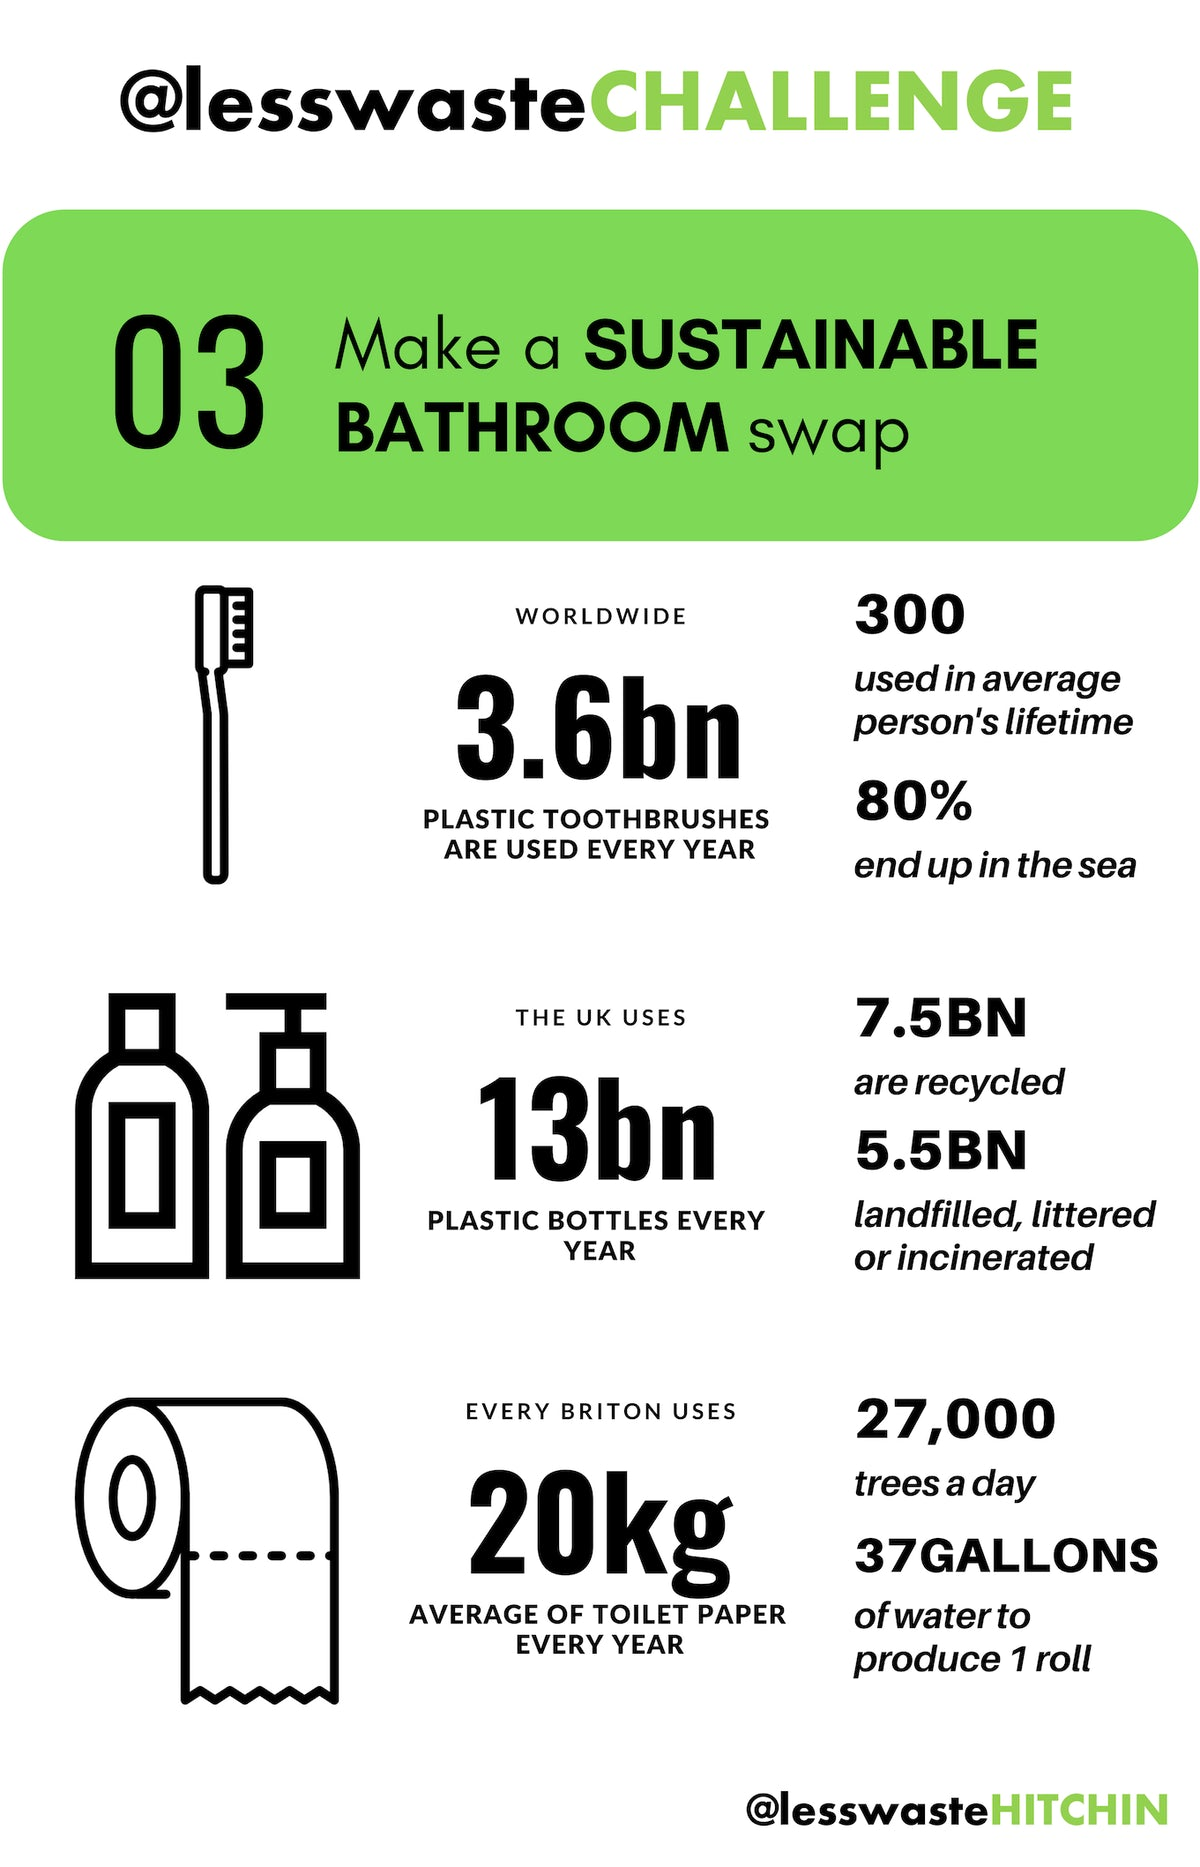 Make a SUSTAINABLE BATHROOM Swap